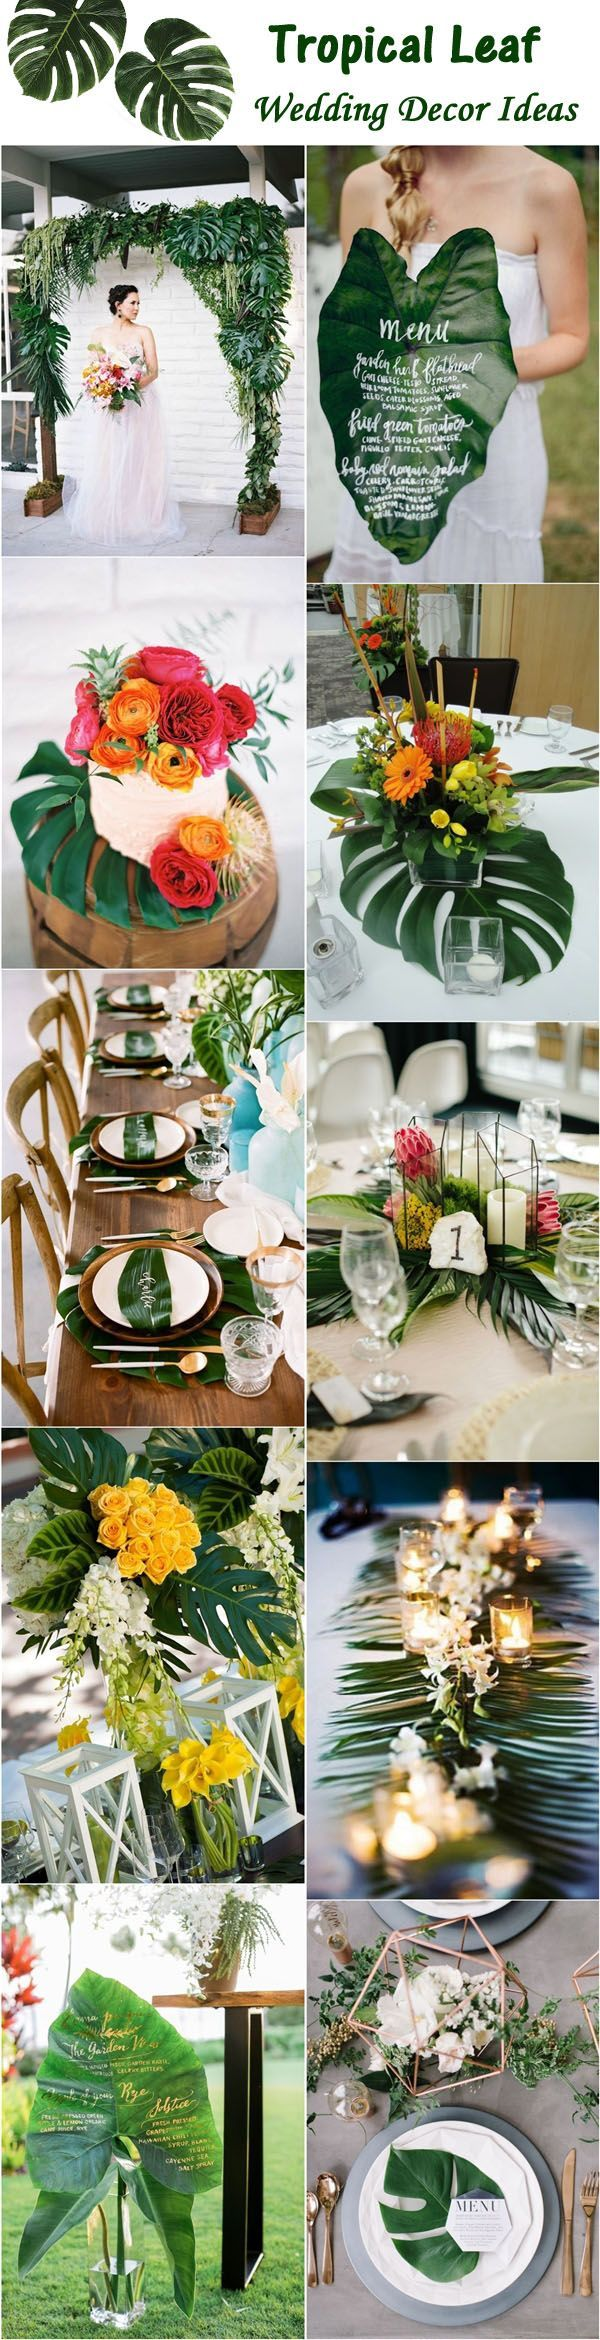 Wedding decoration ideas 2018   Trend Tropical Leaf Greenery Wedding Decor Ideas  Green